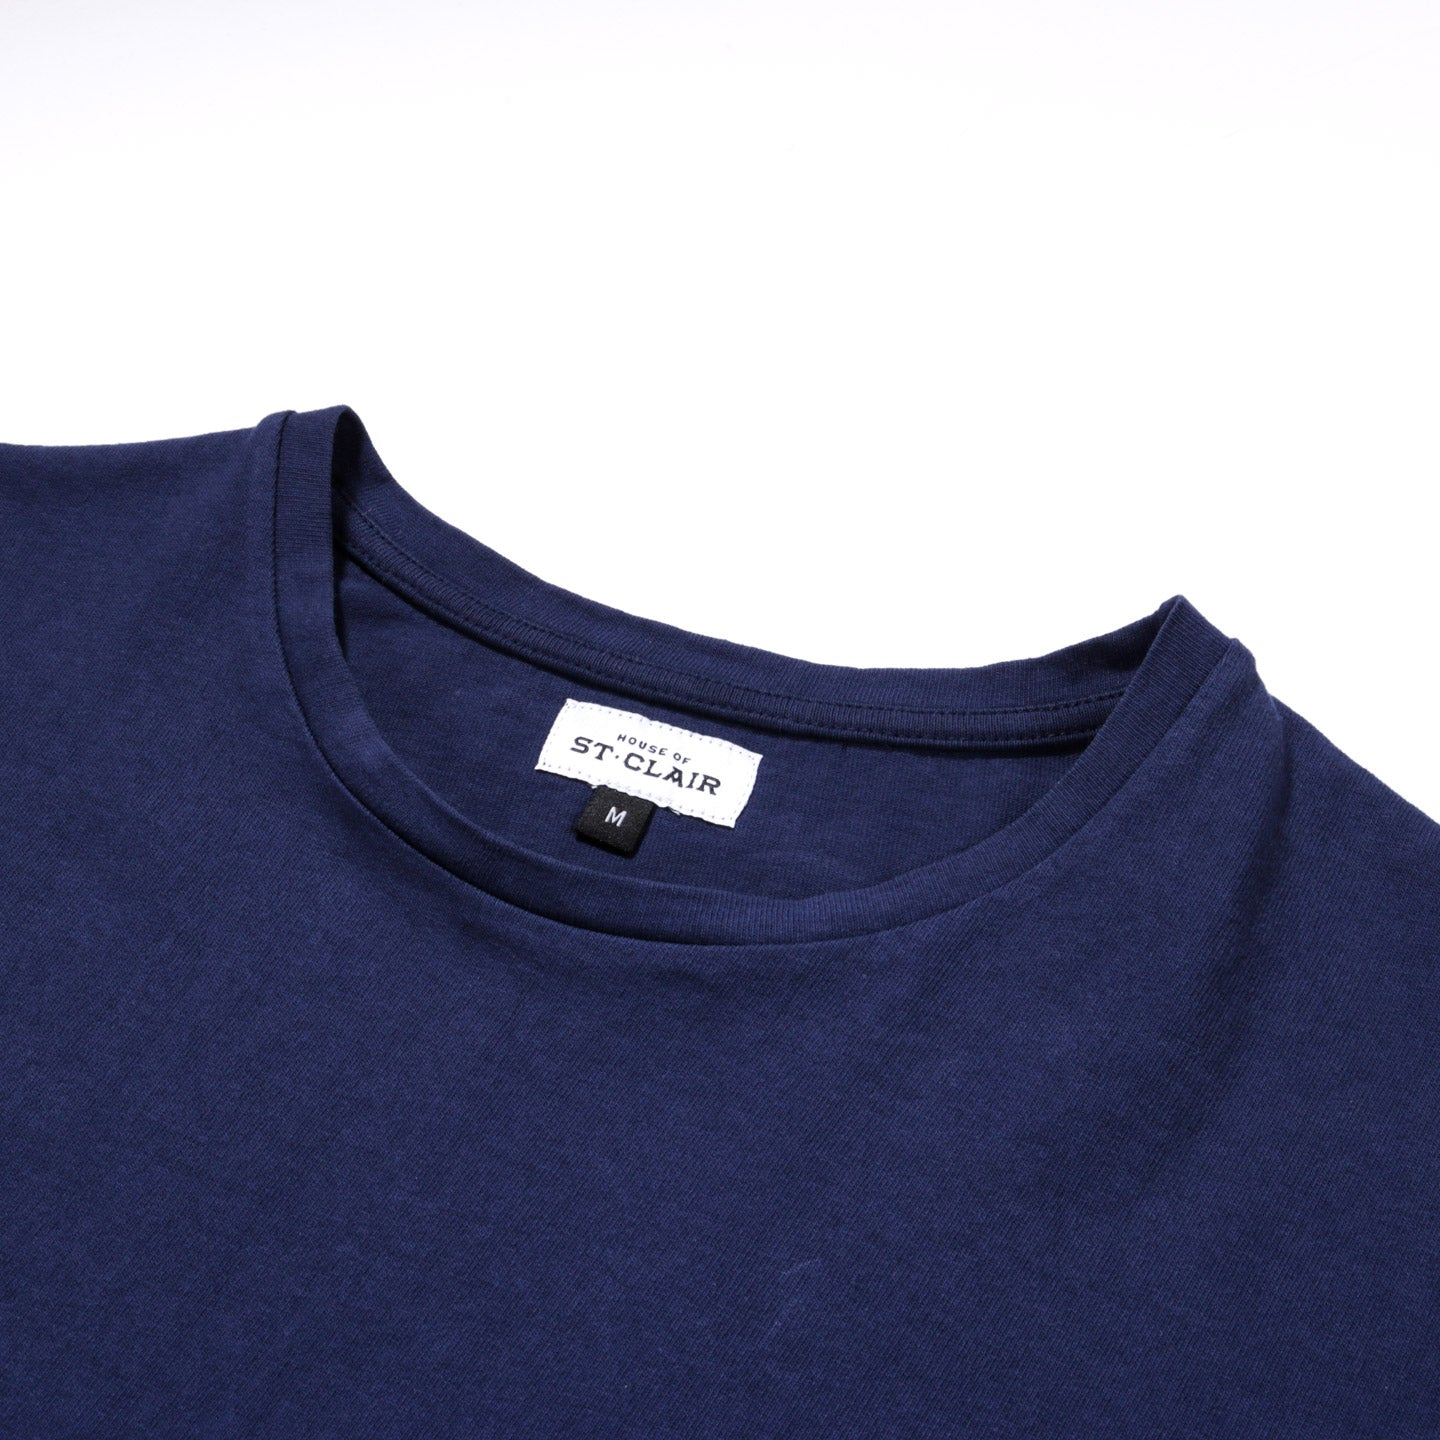 HOUSE OF ST. CLAIR SS TEE BLUE